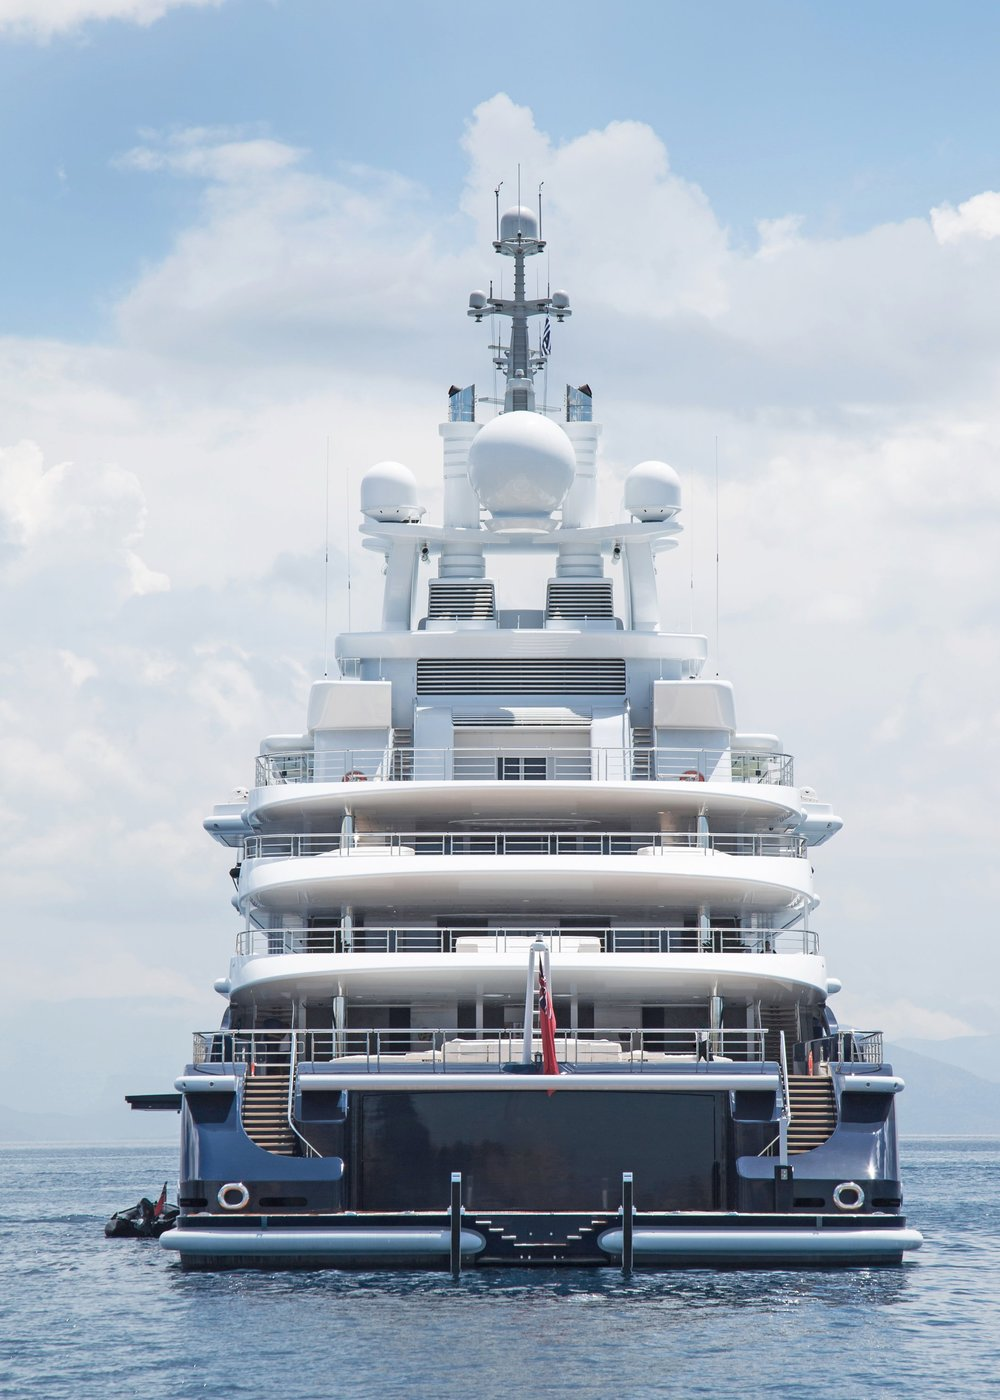 Brookes Bell provides - Software solutions to improve a superyacht's performanceElevated levels of outdoor comfortAssessments of creative designs for workability and safety complianceRisk assessments of a new build or new designHelp with Safe Return to Port compliance & Superyacht evacuation